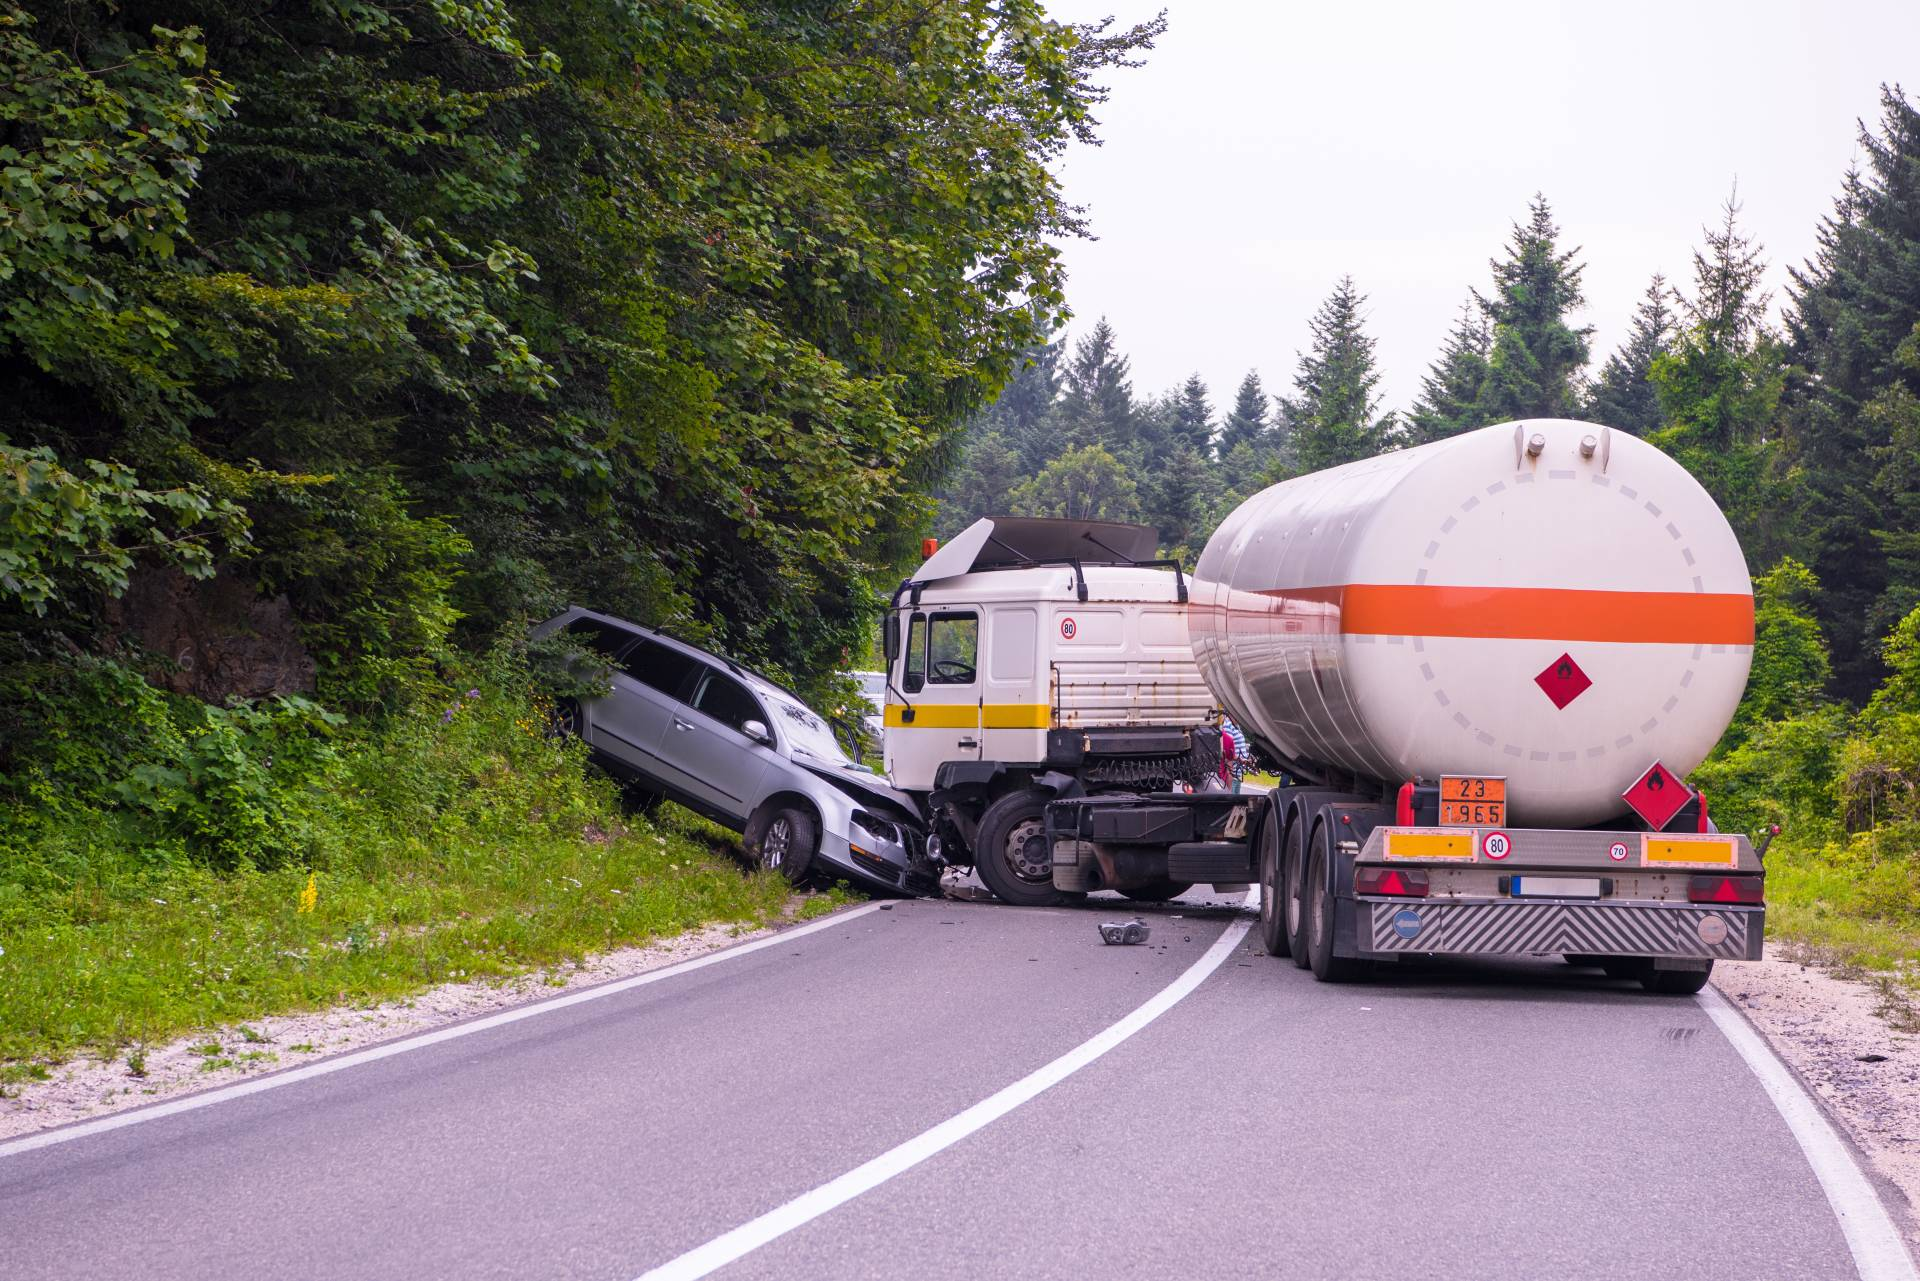 Injured in a truck accident? Contact the angell law firm today!